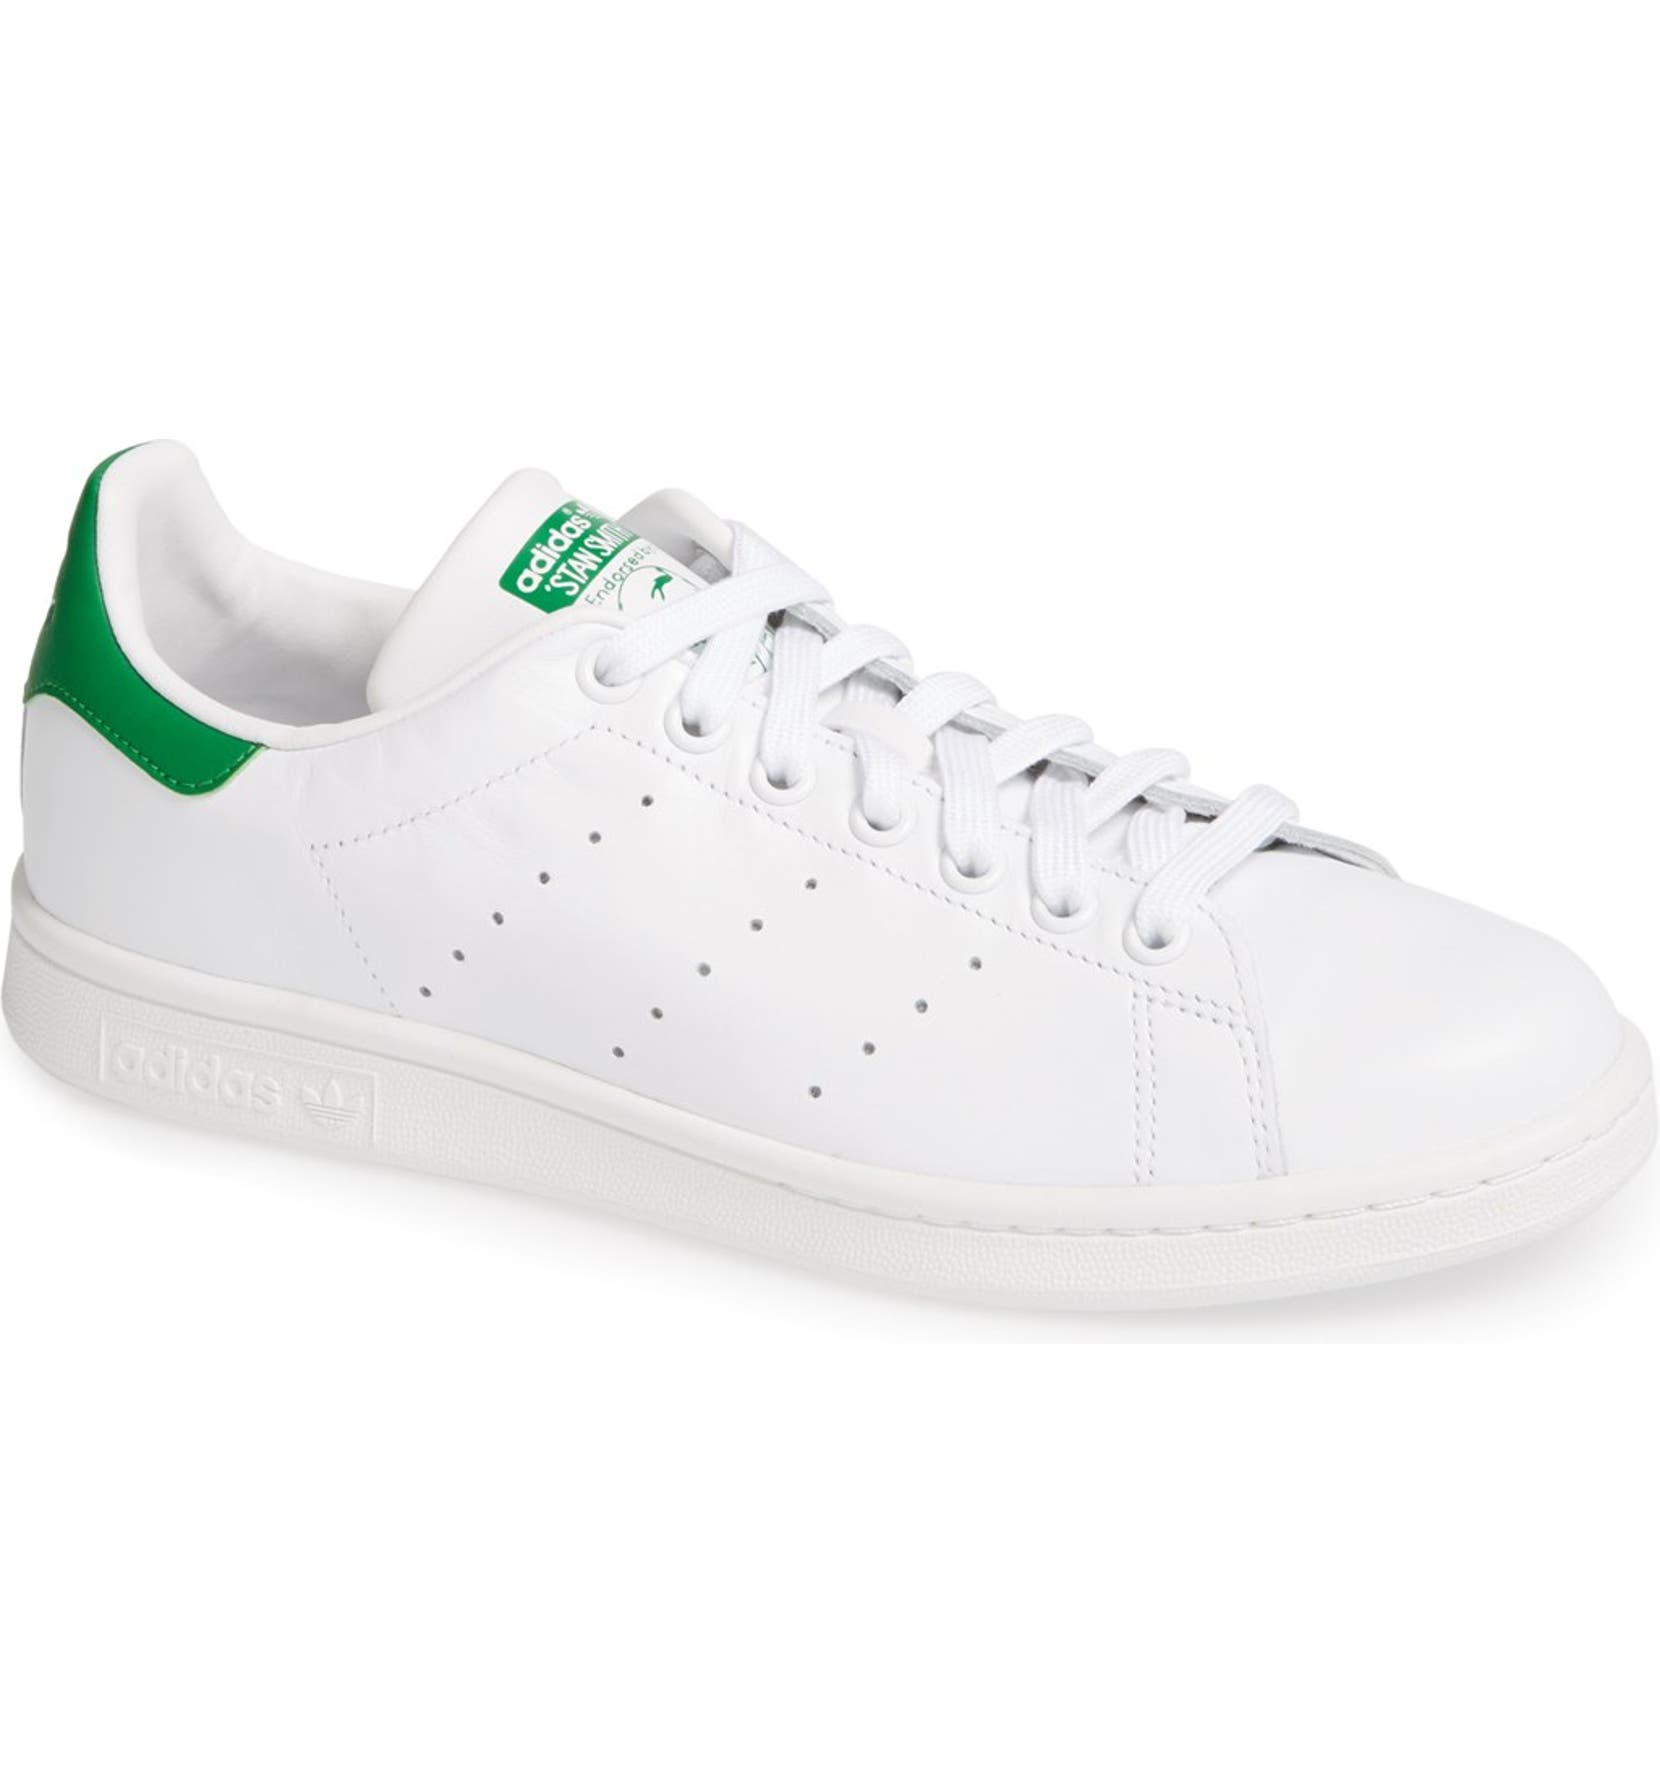 new style 1182d d8cd1 adidas Stan Smith Sneaker (Women)   Nordstrom